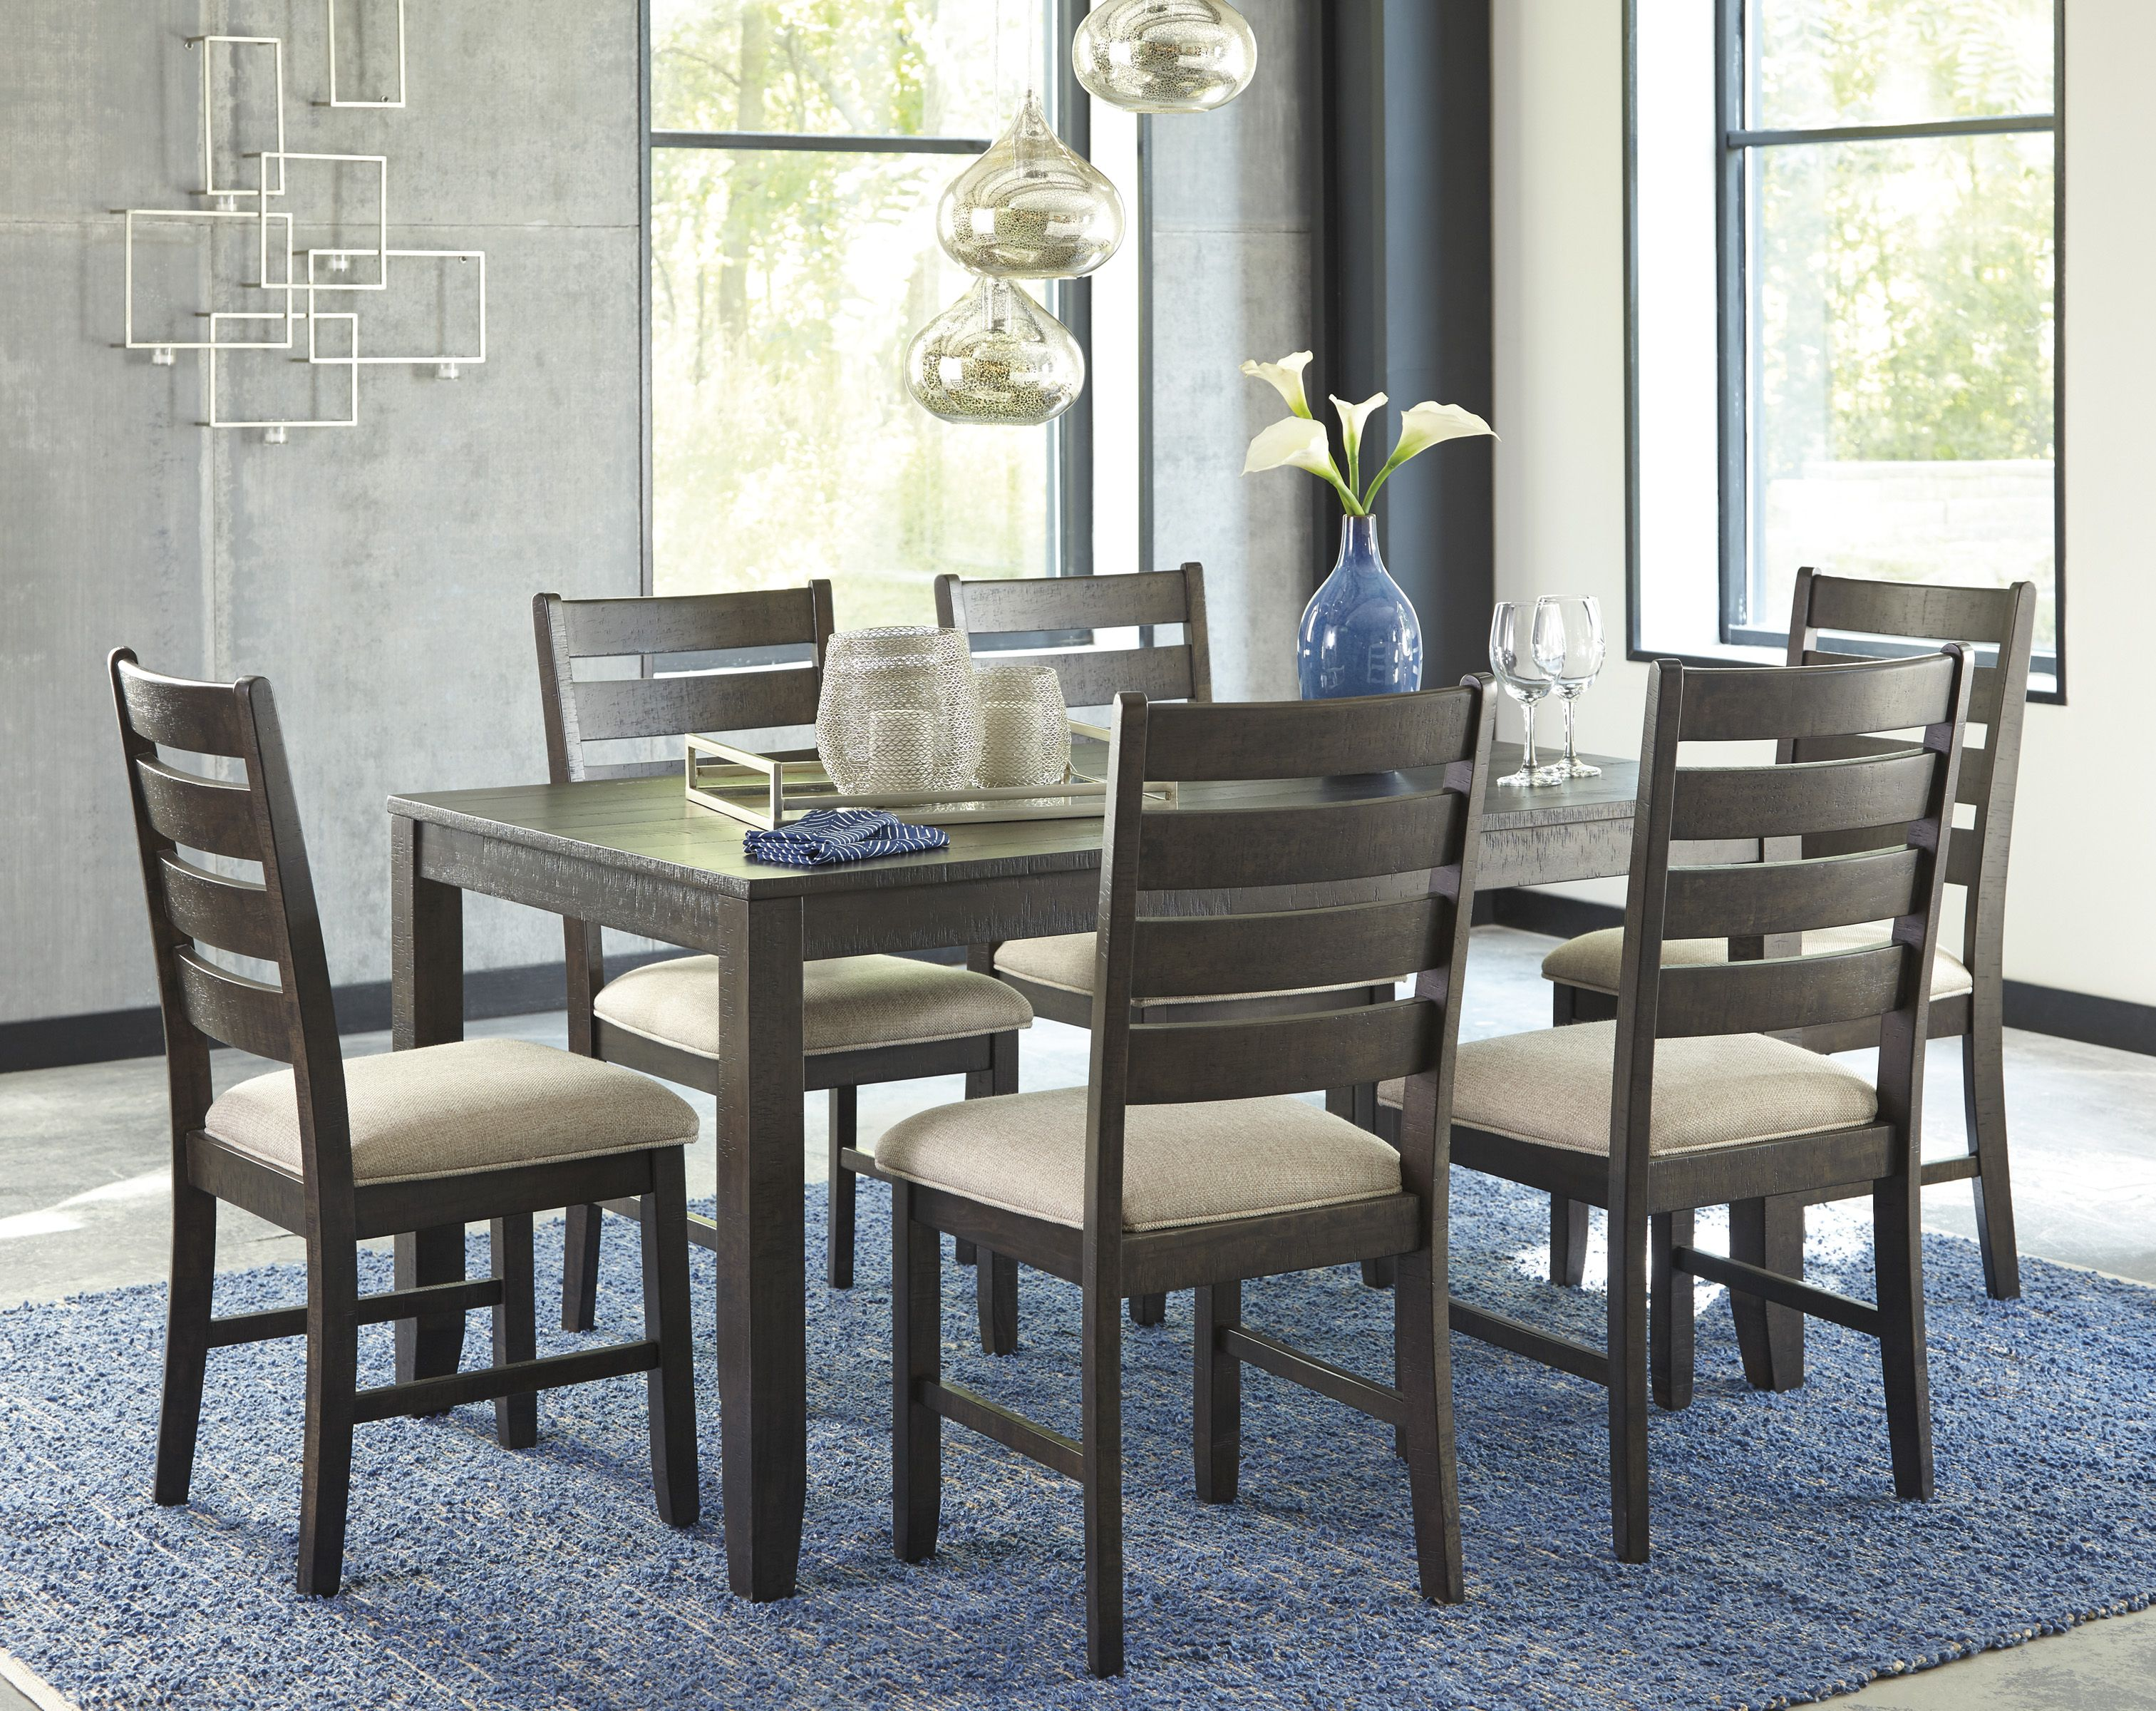 Rokane 7 Piece Dining Set D397 You Love A Clean And Contemporary